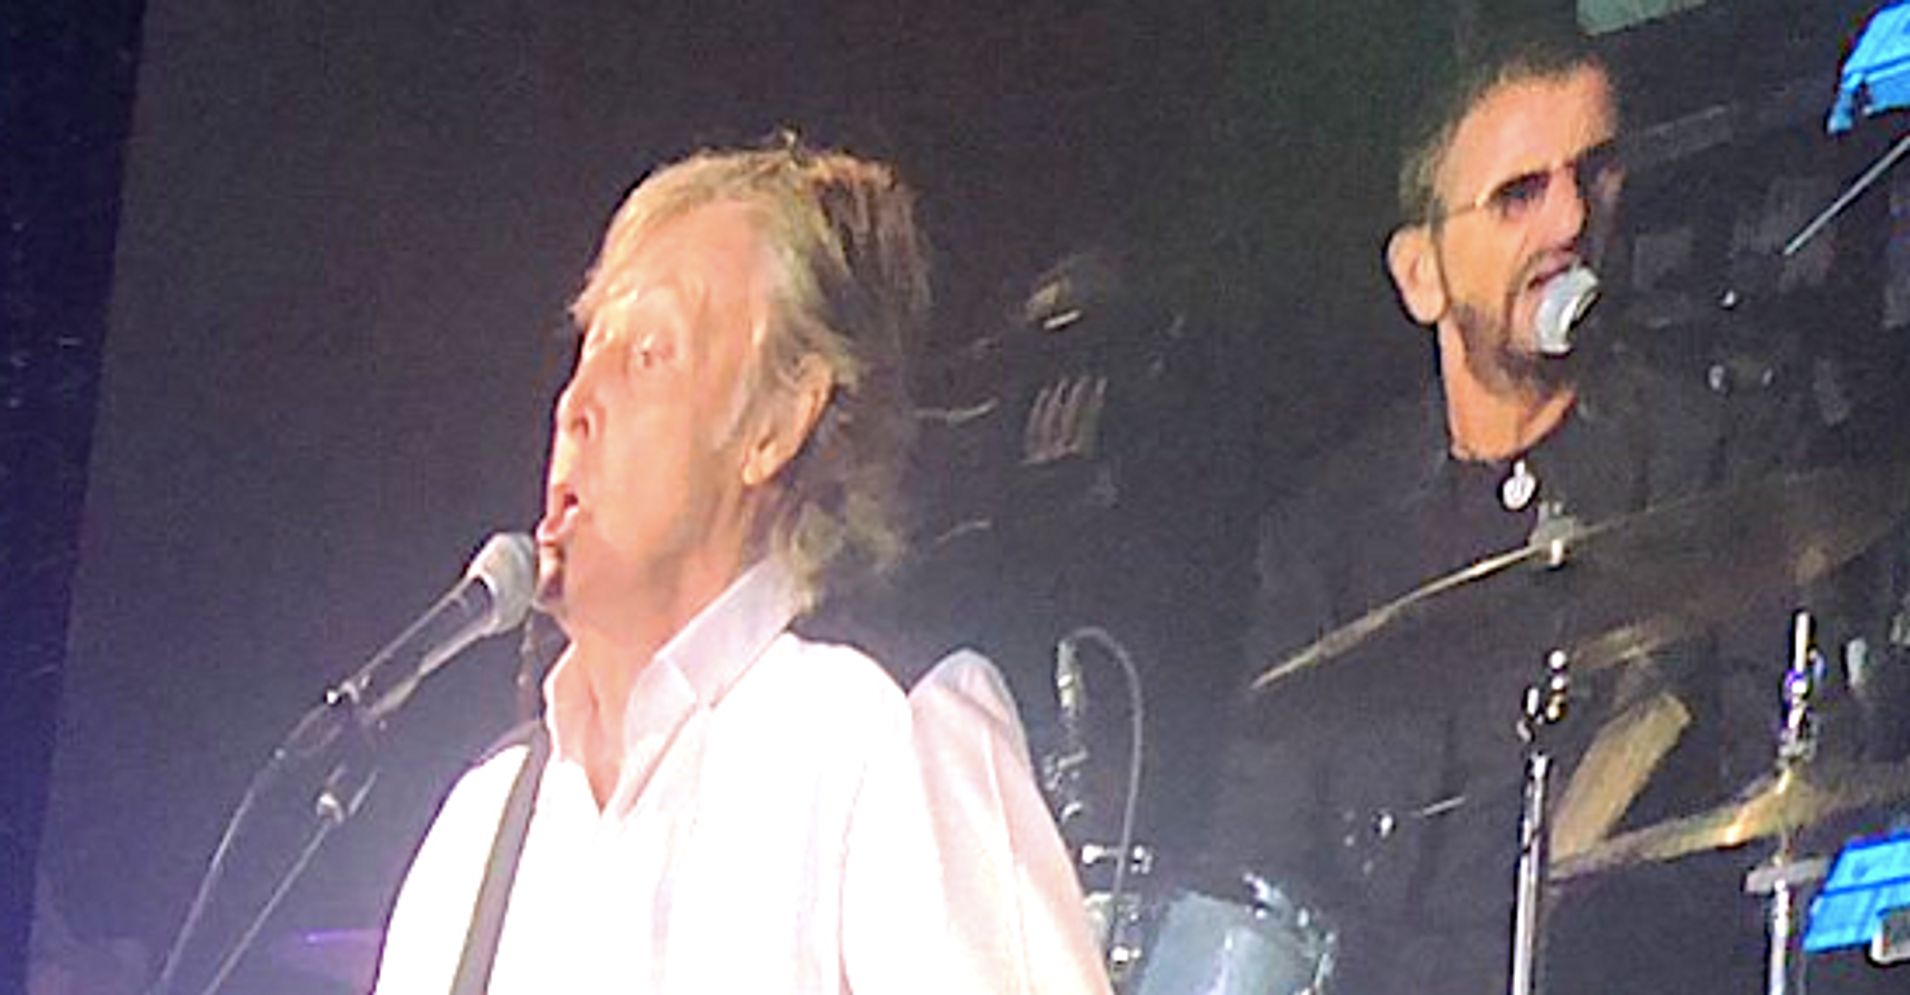 Westlake Legal Group 5d2ade3b2400008c1793570a Beatles Fans Go Bonkers As Paul And Ringo Reunite On L.A. Stage